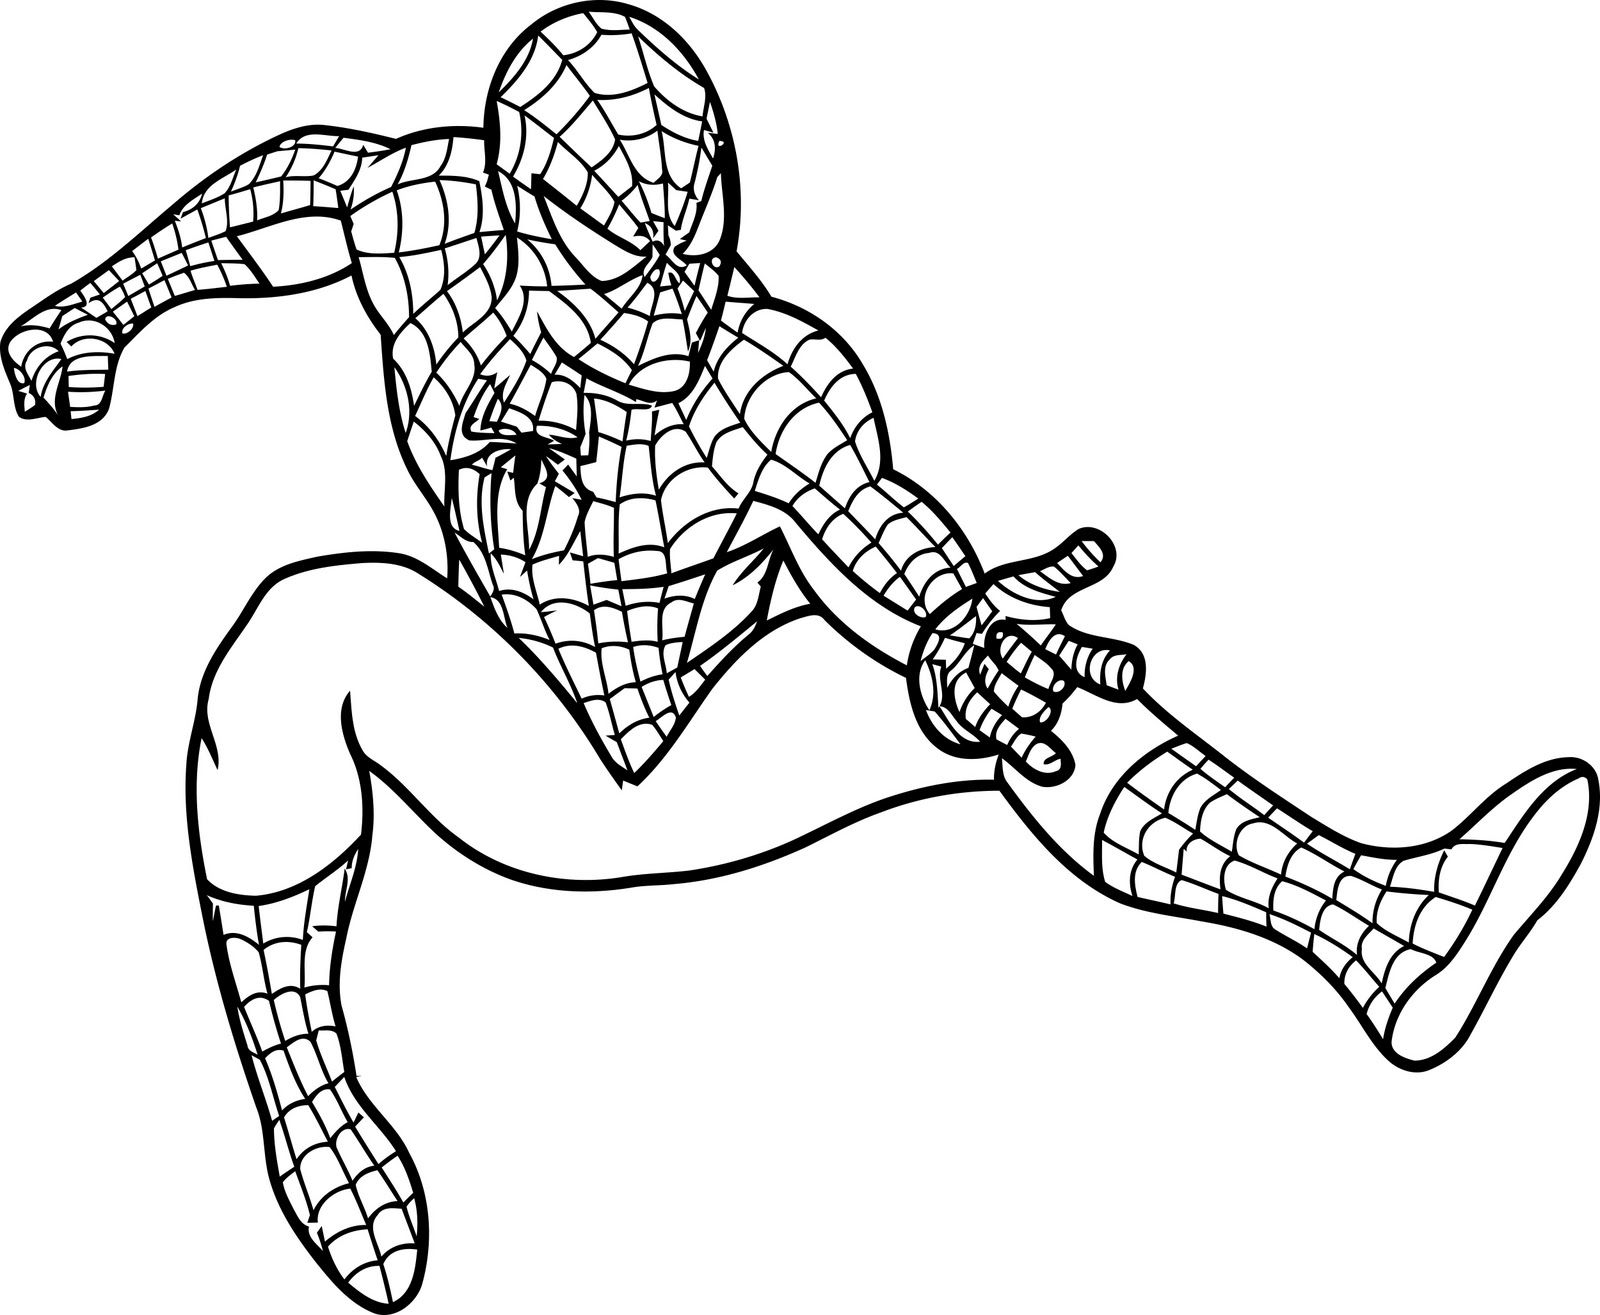 spiderman coloring pages printable Free Printable Spiderman Coloring Pages For Kids | Projects to Try  spiderman coloring pages printable